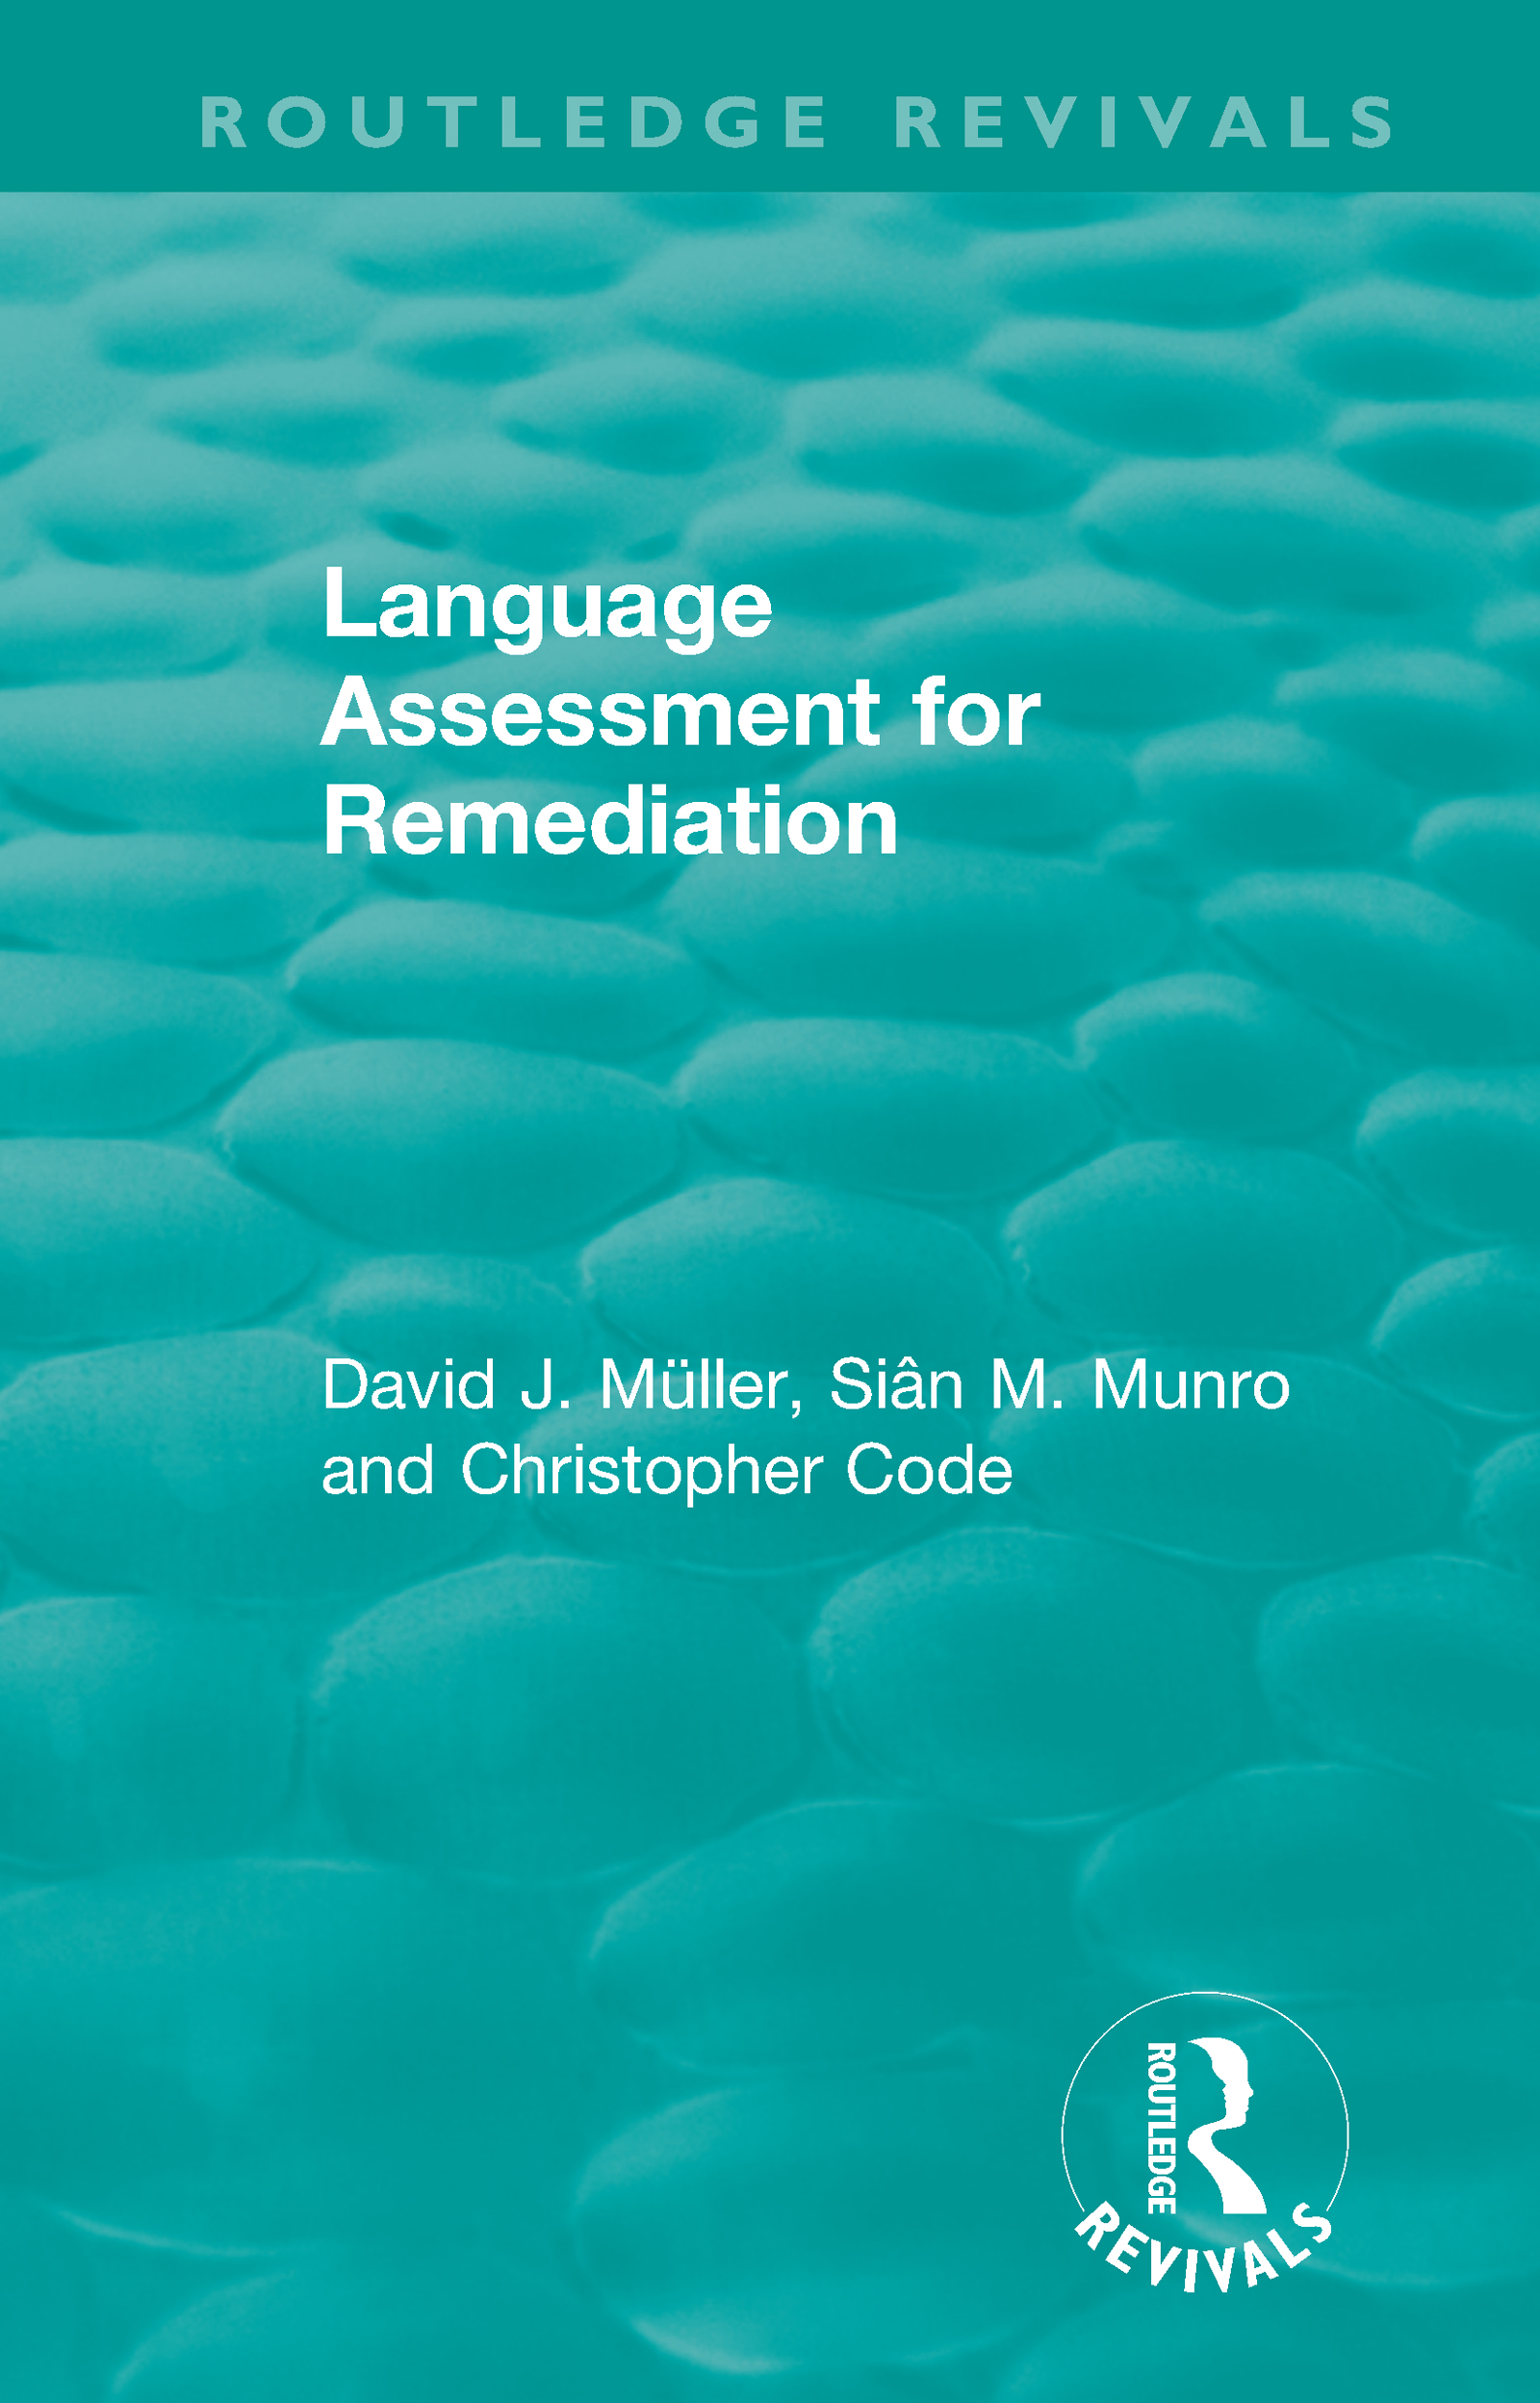 Language Assessment for Remediation (1981) book cover